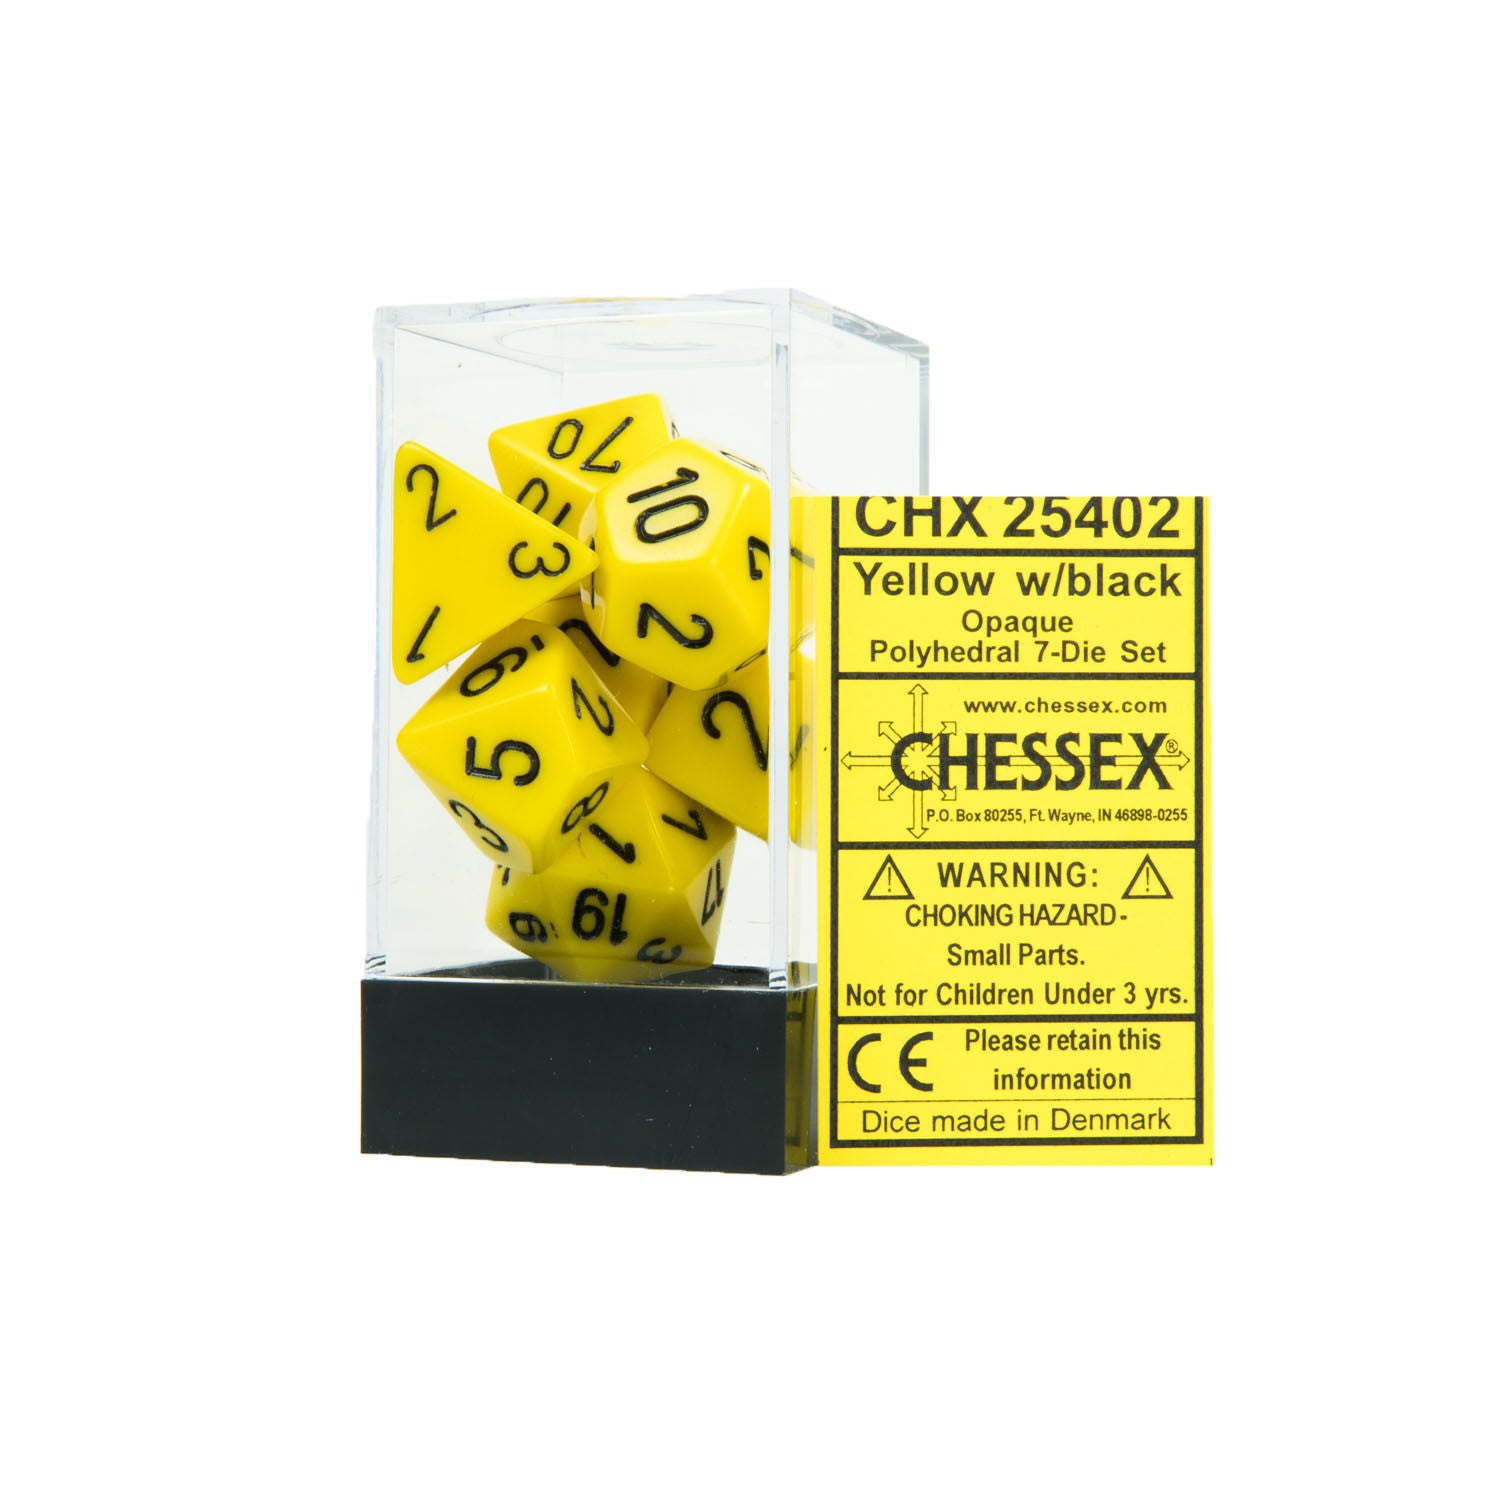 Chessex CHX25402 Opaque Yellow w/black Polyhedral Dice Set